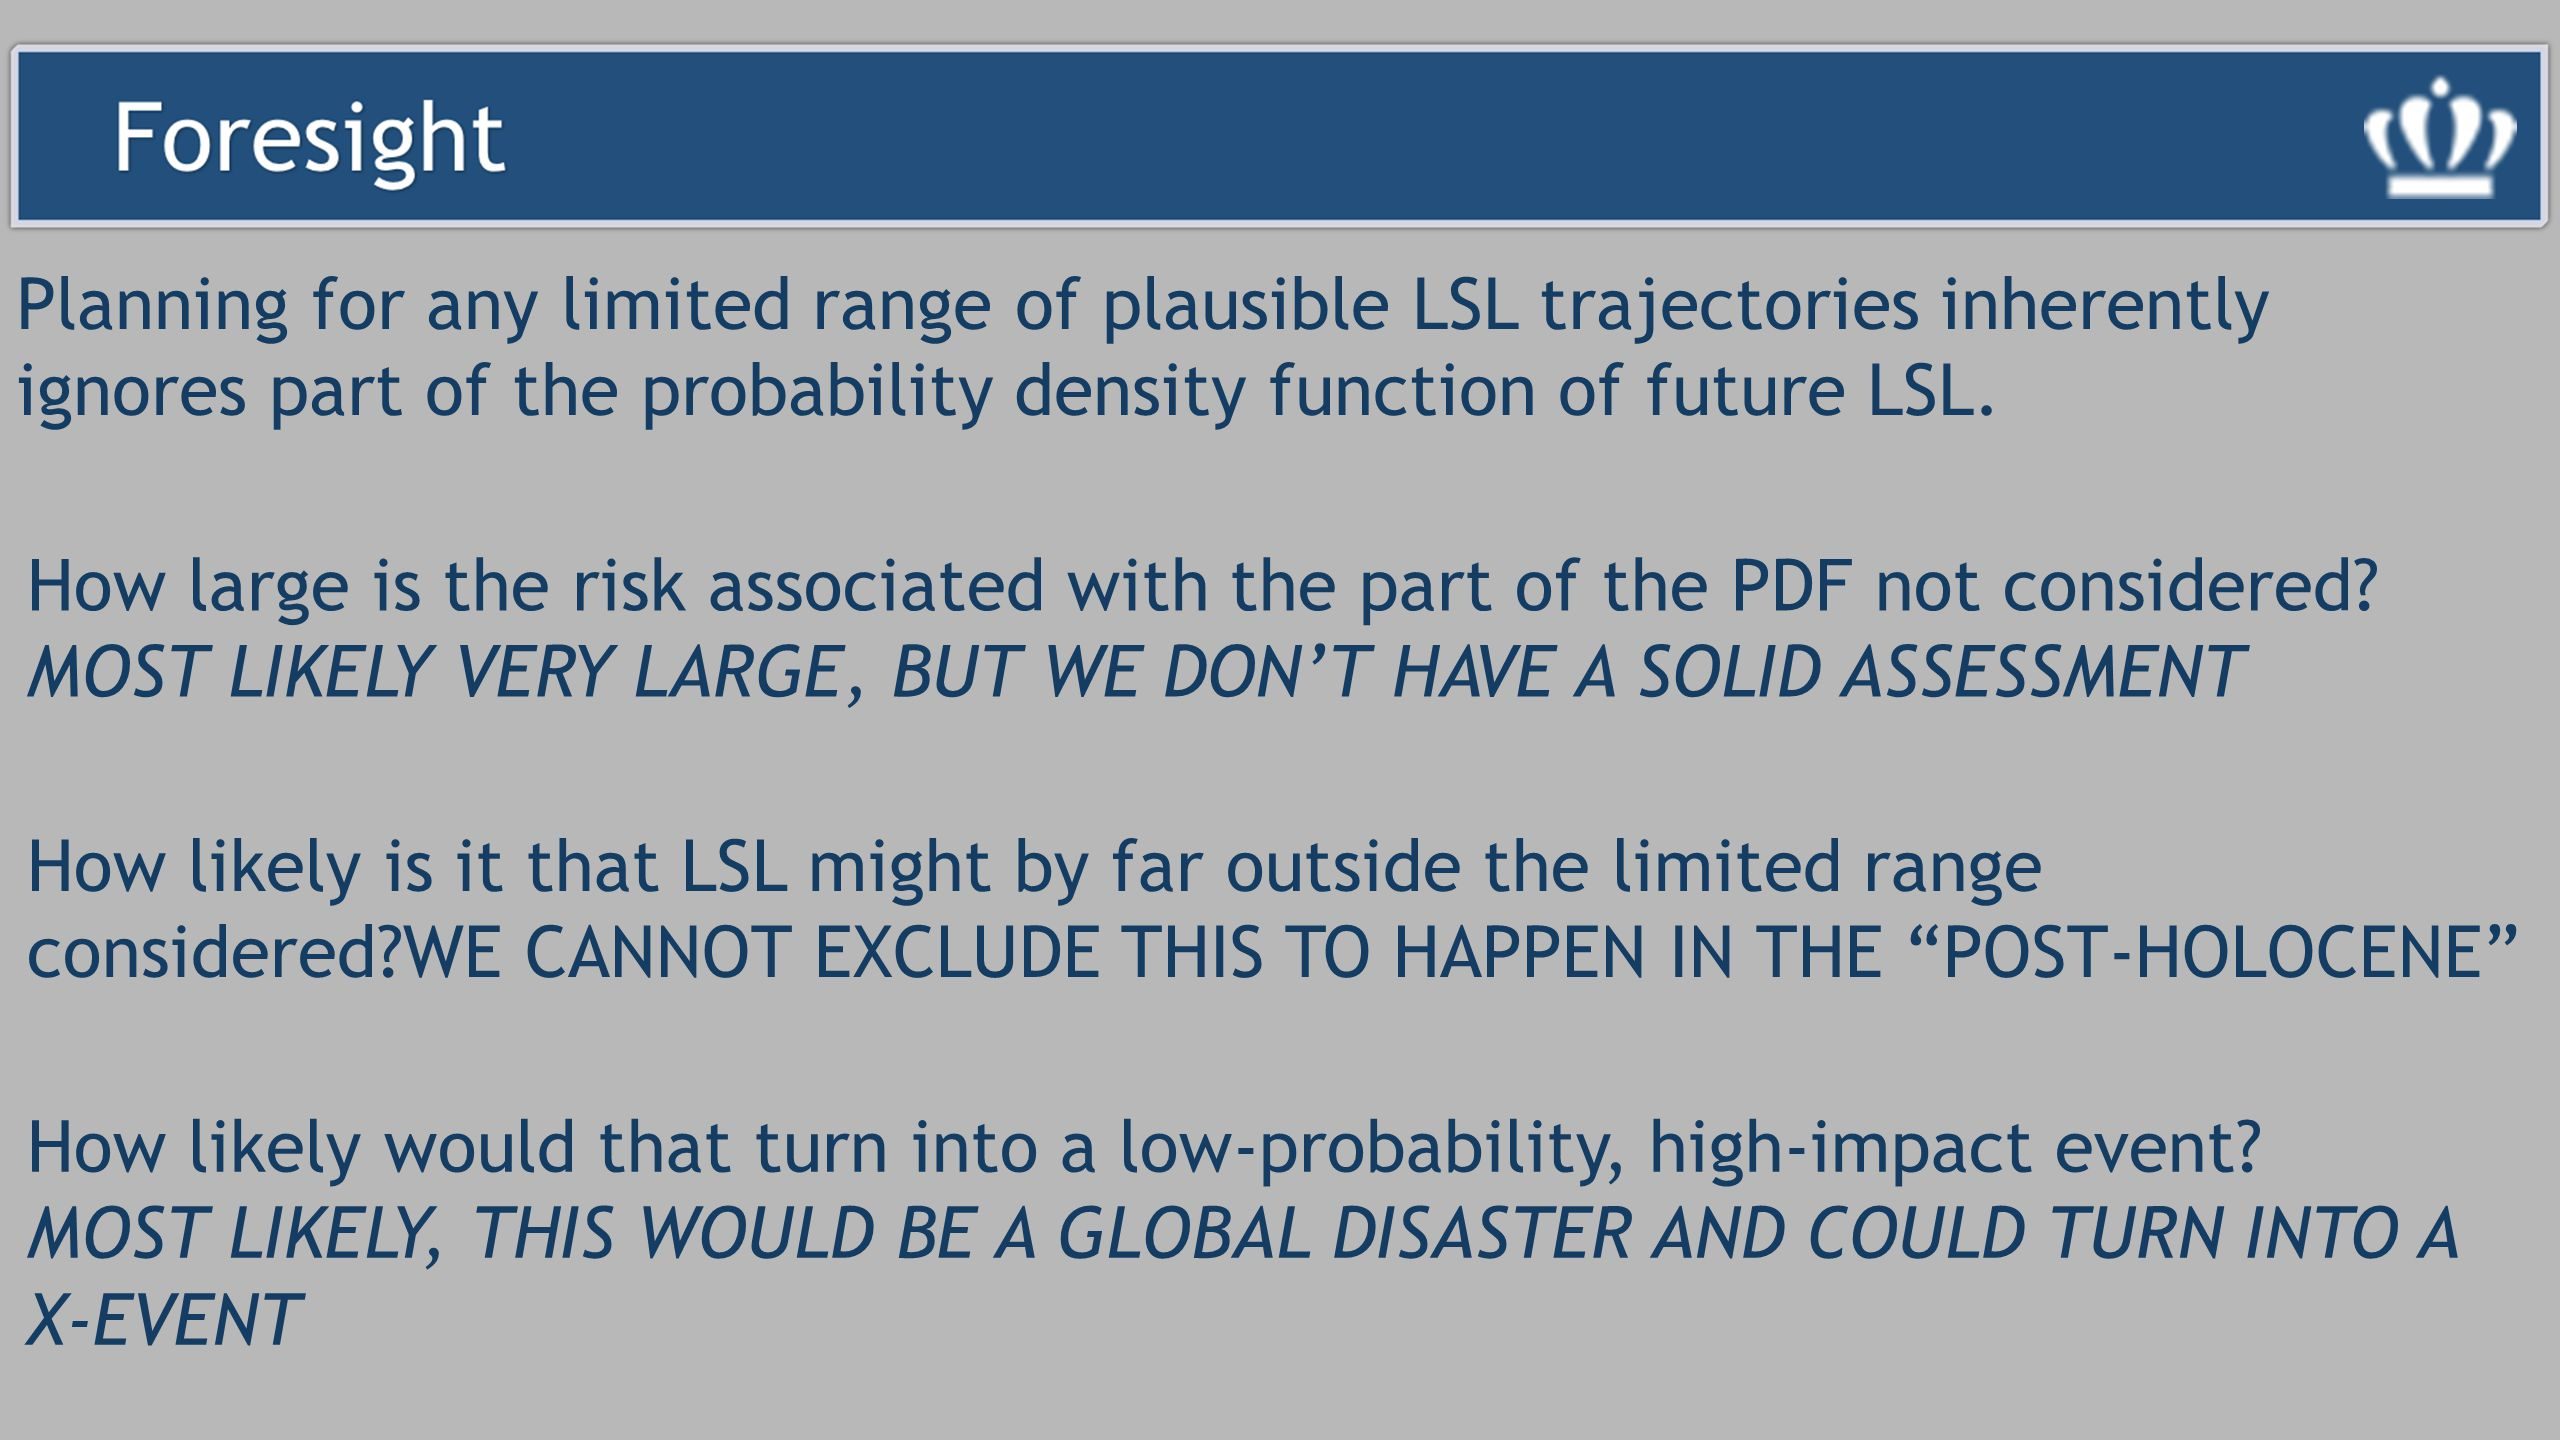 Planning for any limited range of plausible LSL trajectories inherently ignores part of the probability density function of future LSL.